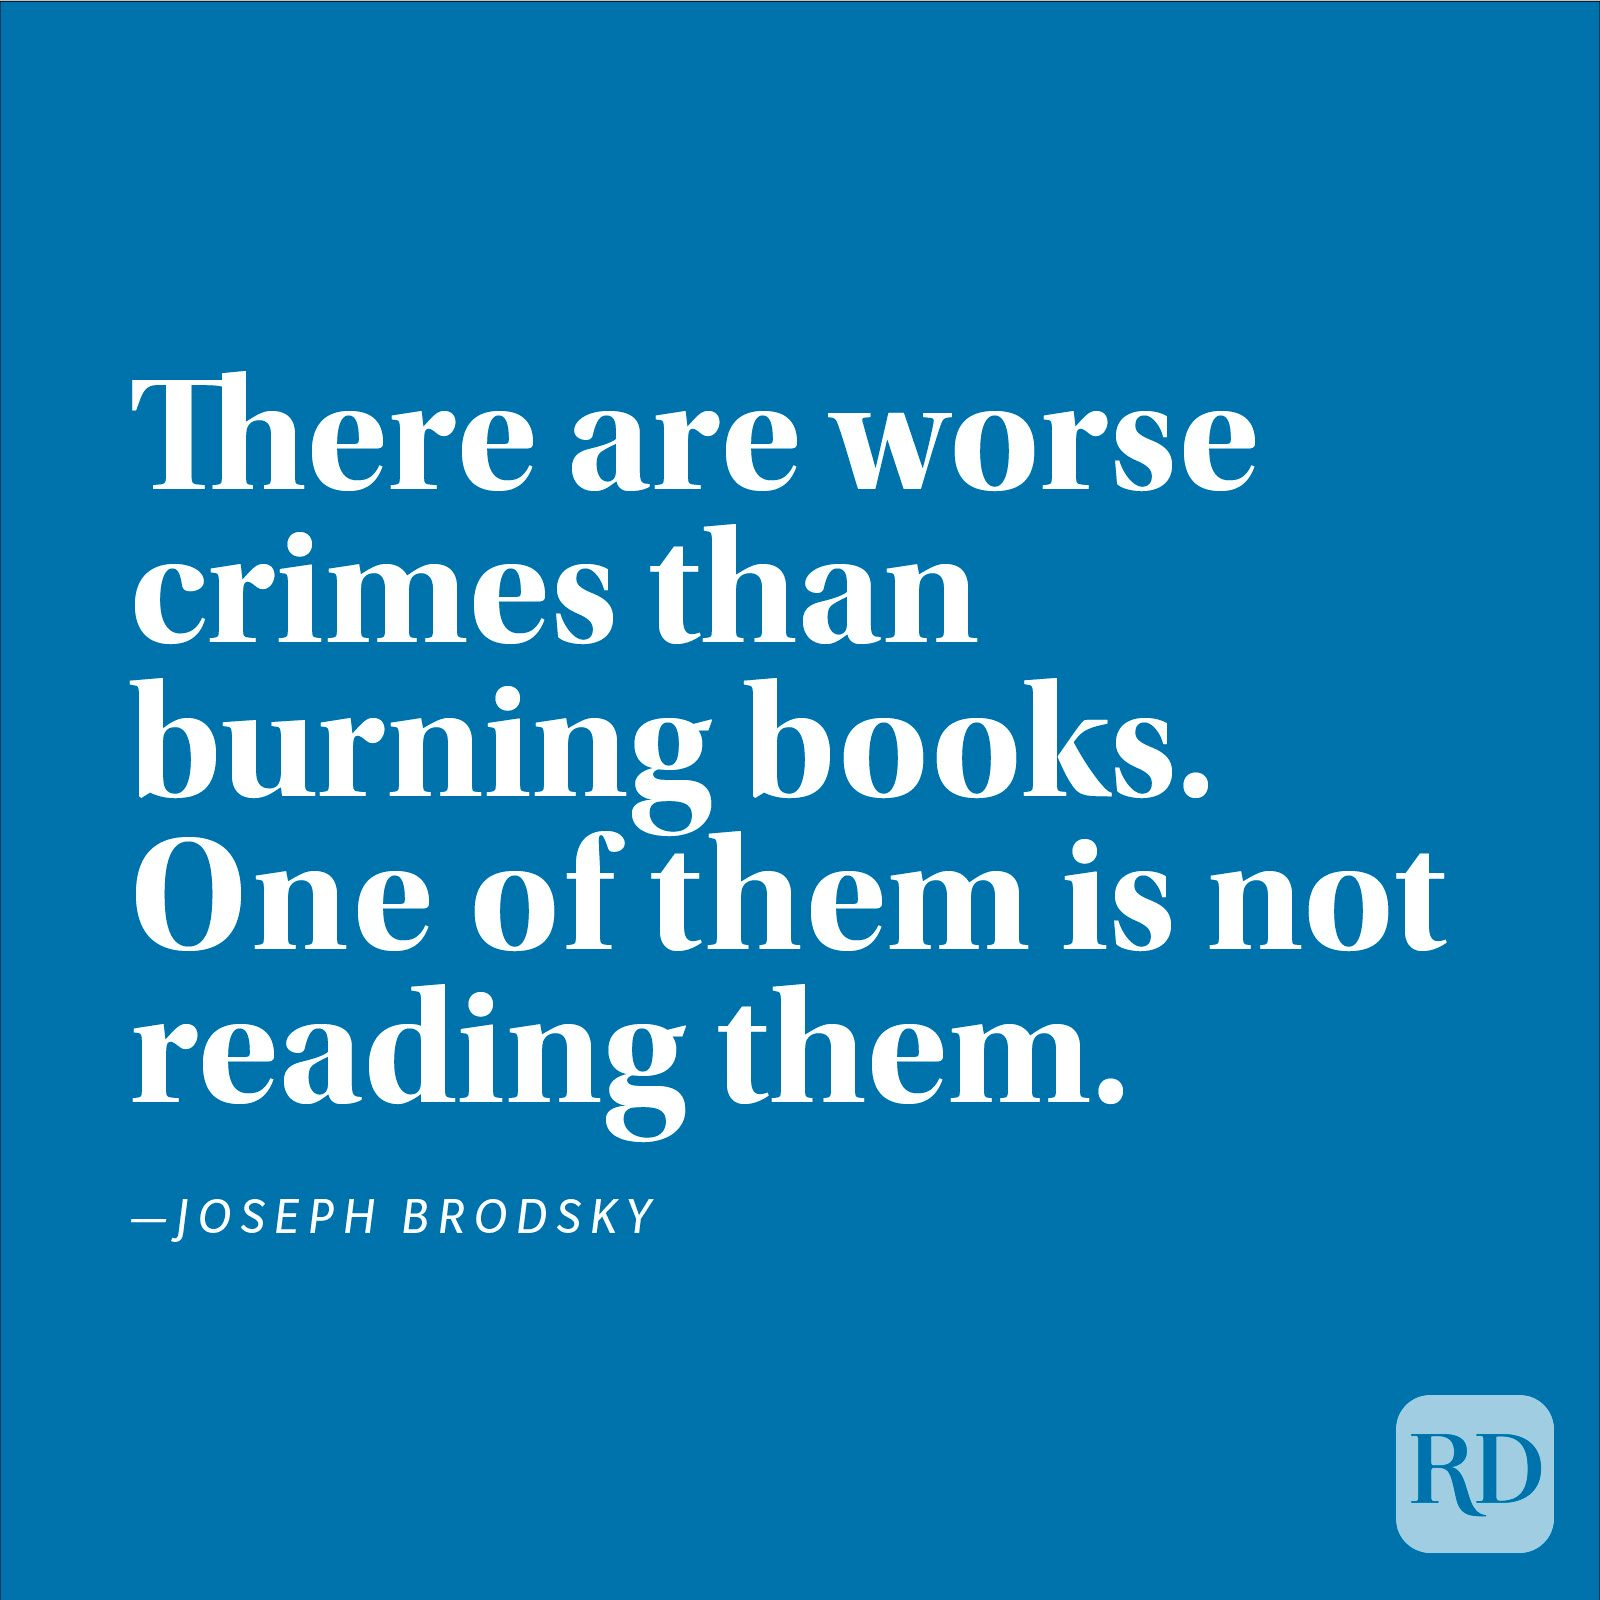 """There are worse crimes than burning books. One of them is not reading them."" —Joseph Brodsky"